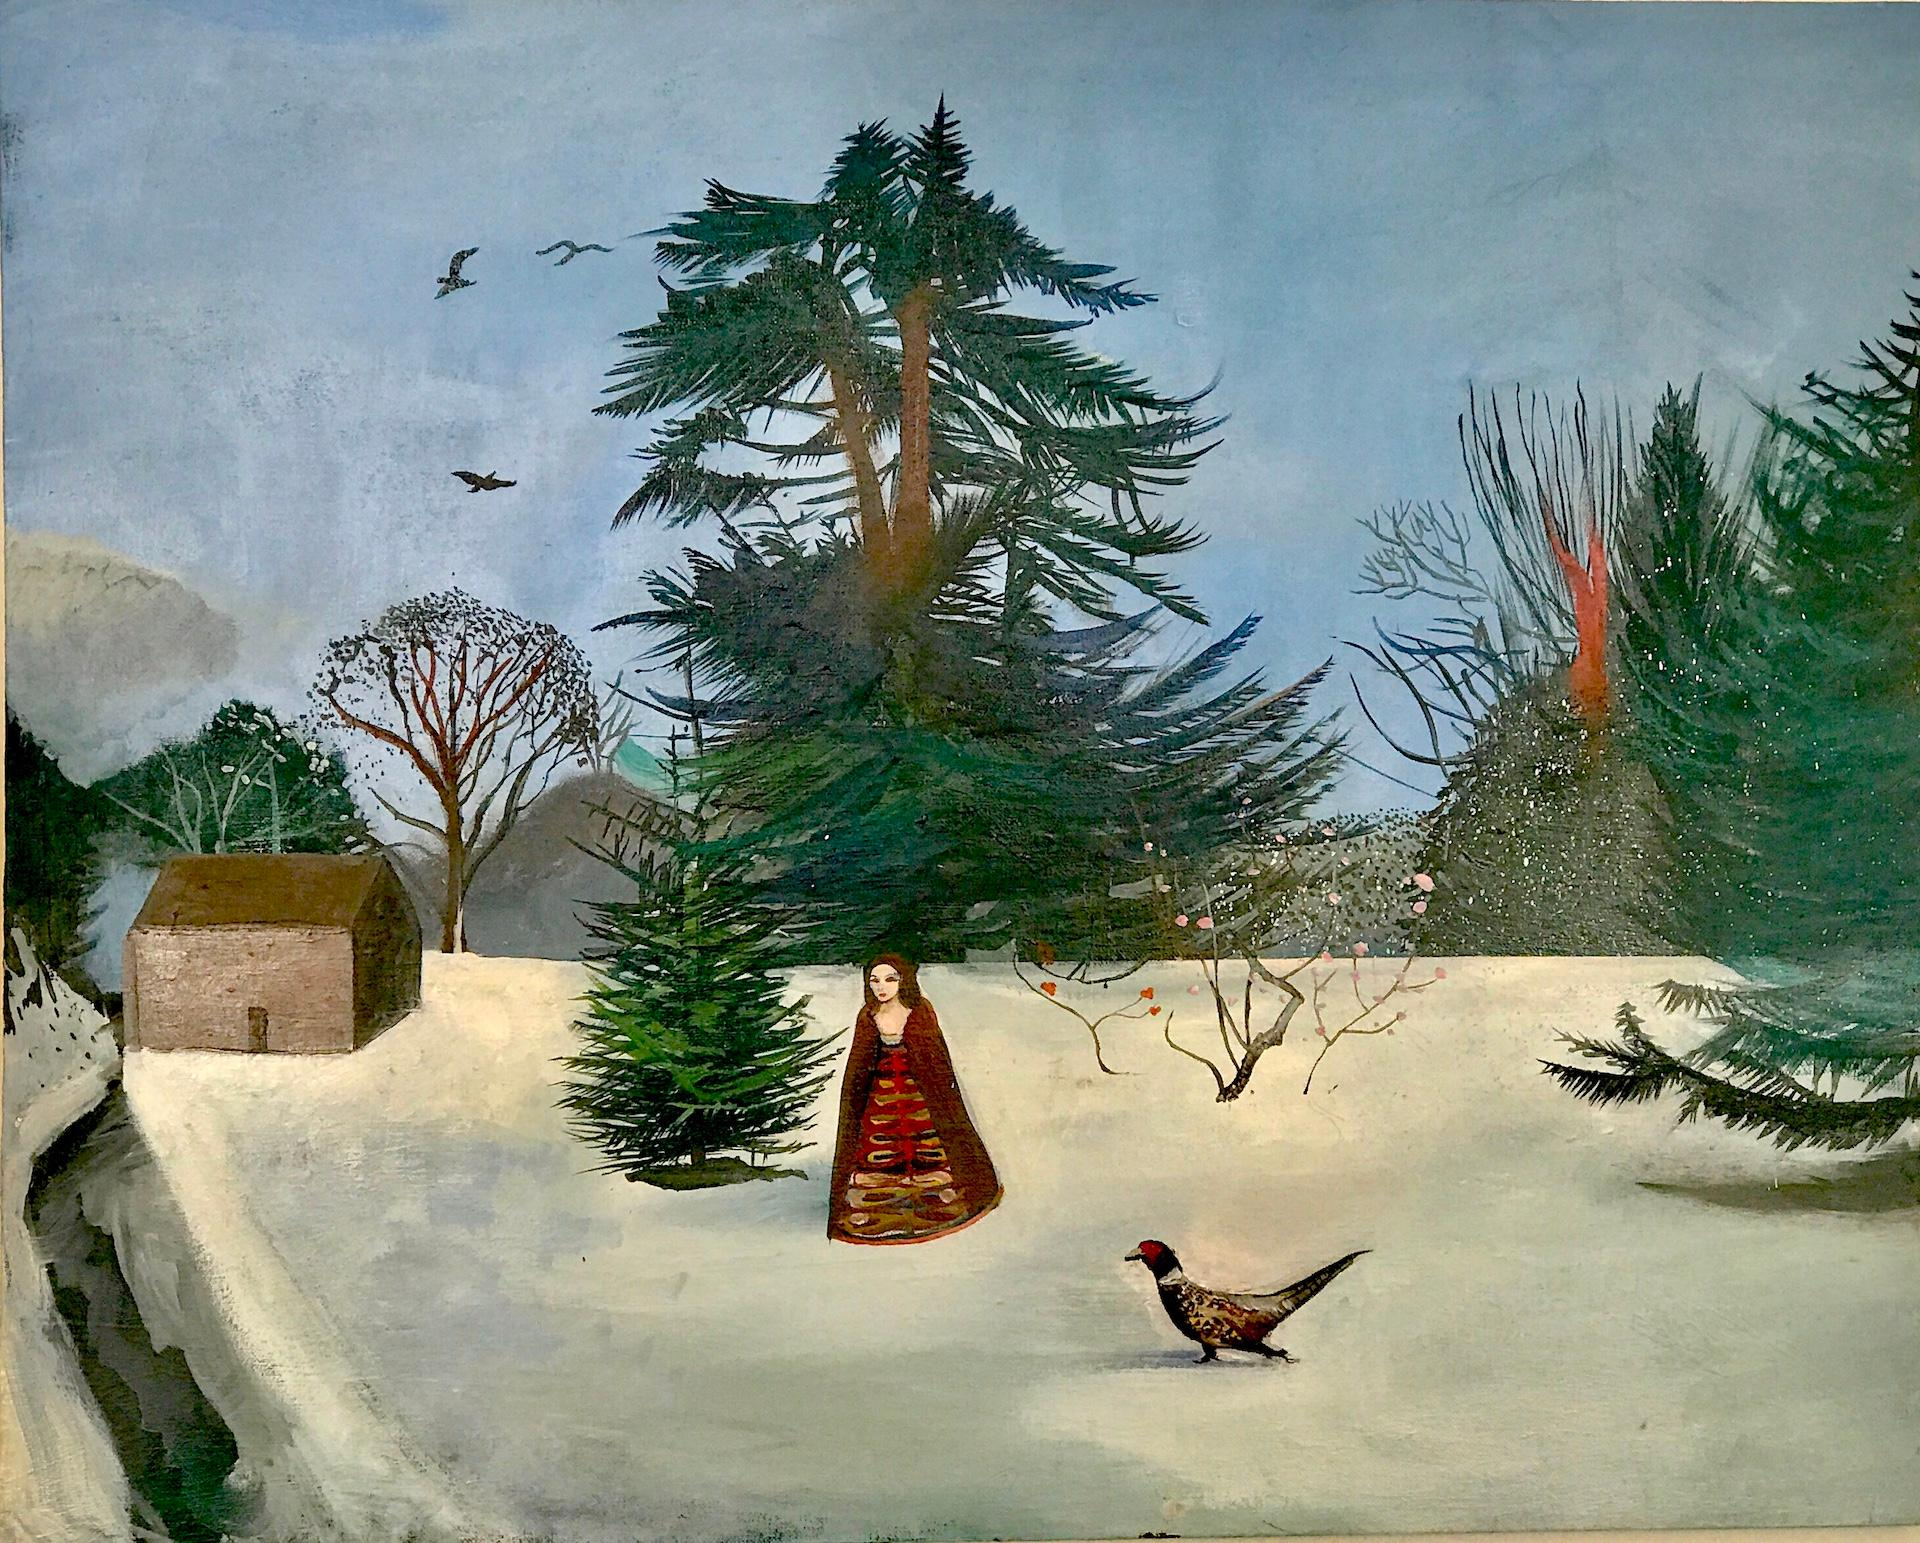 The Pheasant, Daisy Clarke, Traditional Oil Painting, Large Landscape Artwork